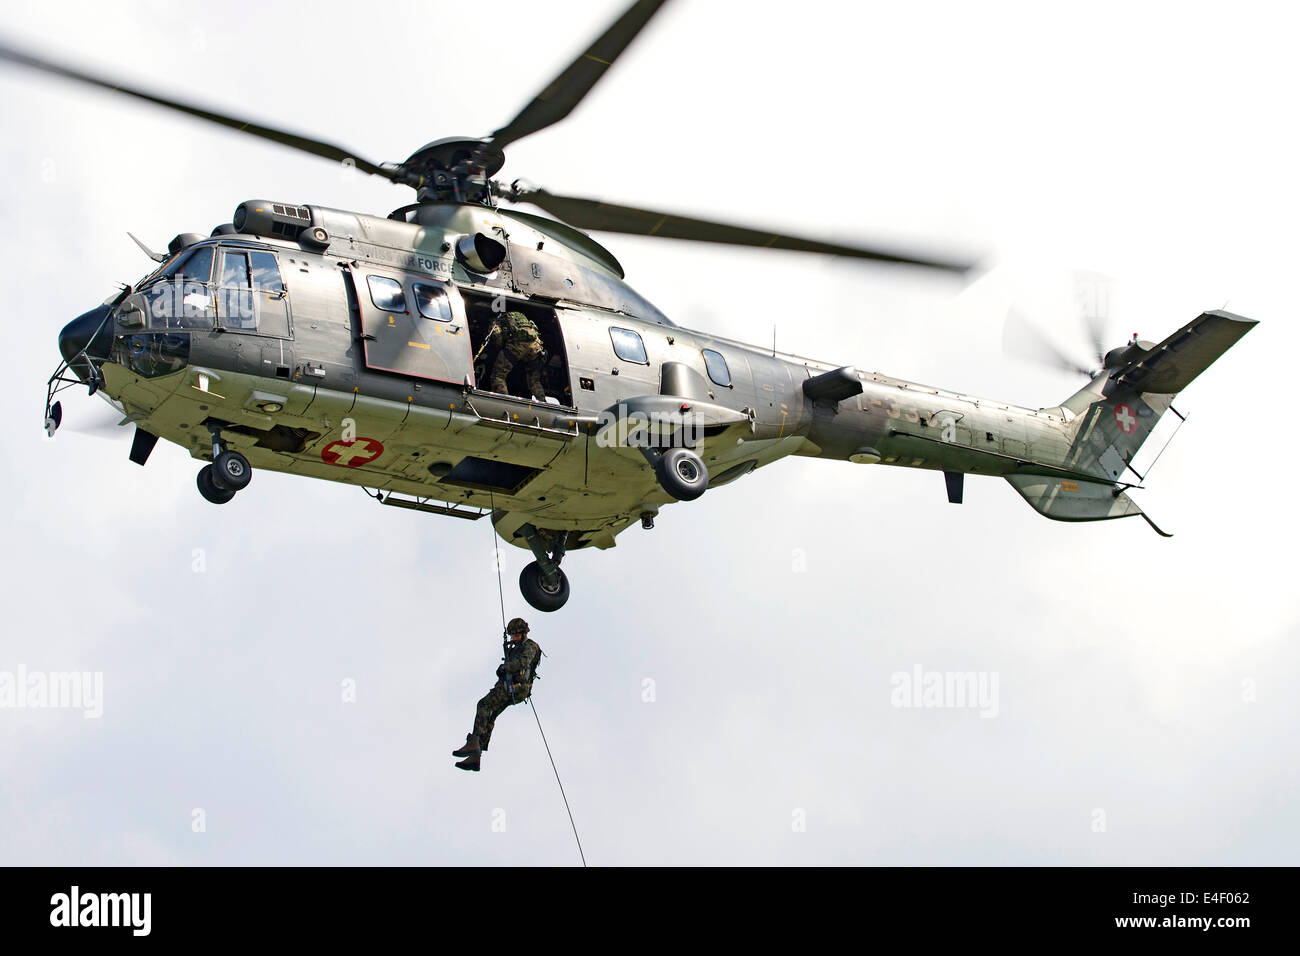 Swiss Air Force SAR Super Puma Military Helicopters t f4dc41db939